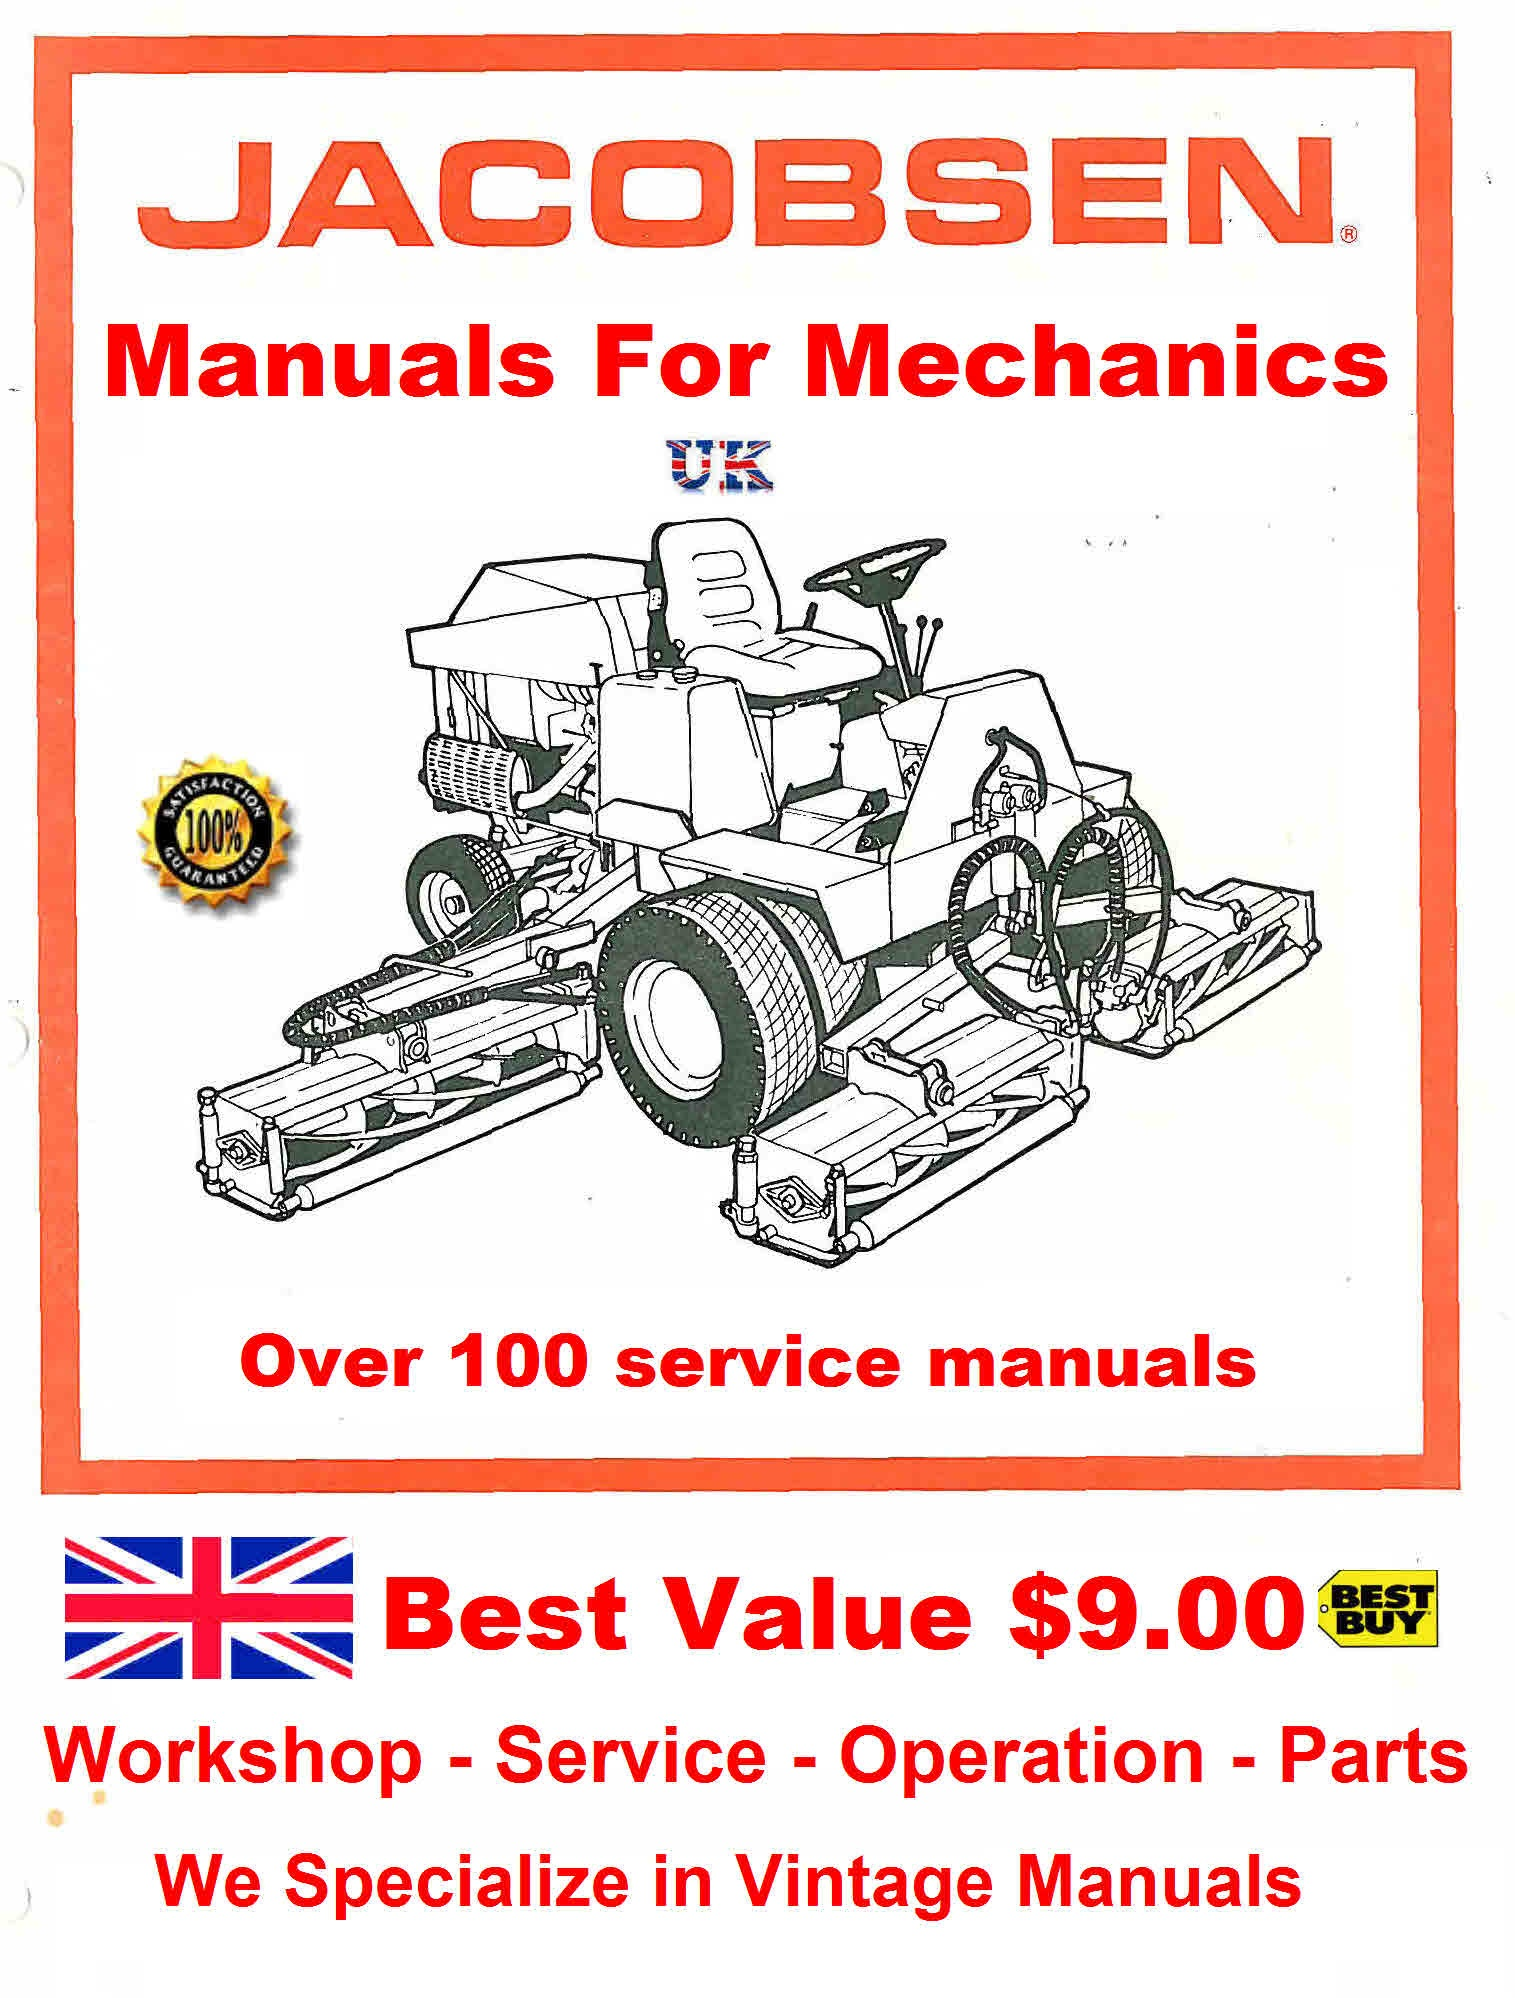 Array - jacabson service manuals for mechanics  rh   sellfy com